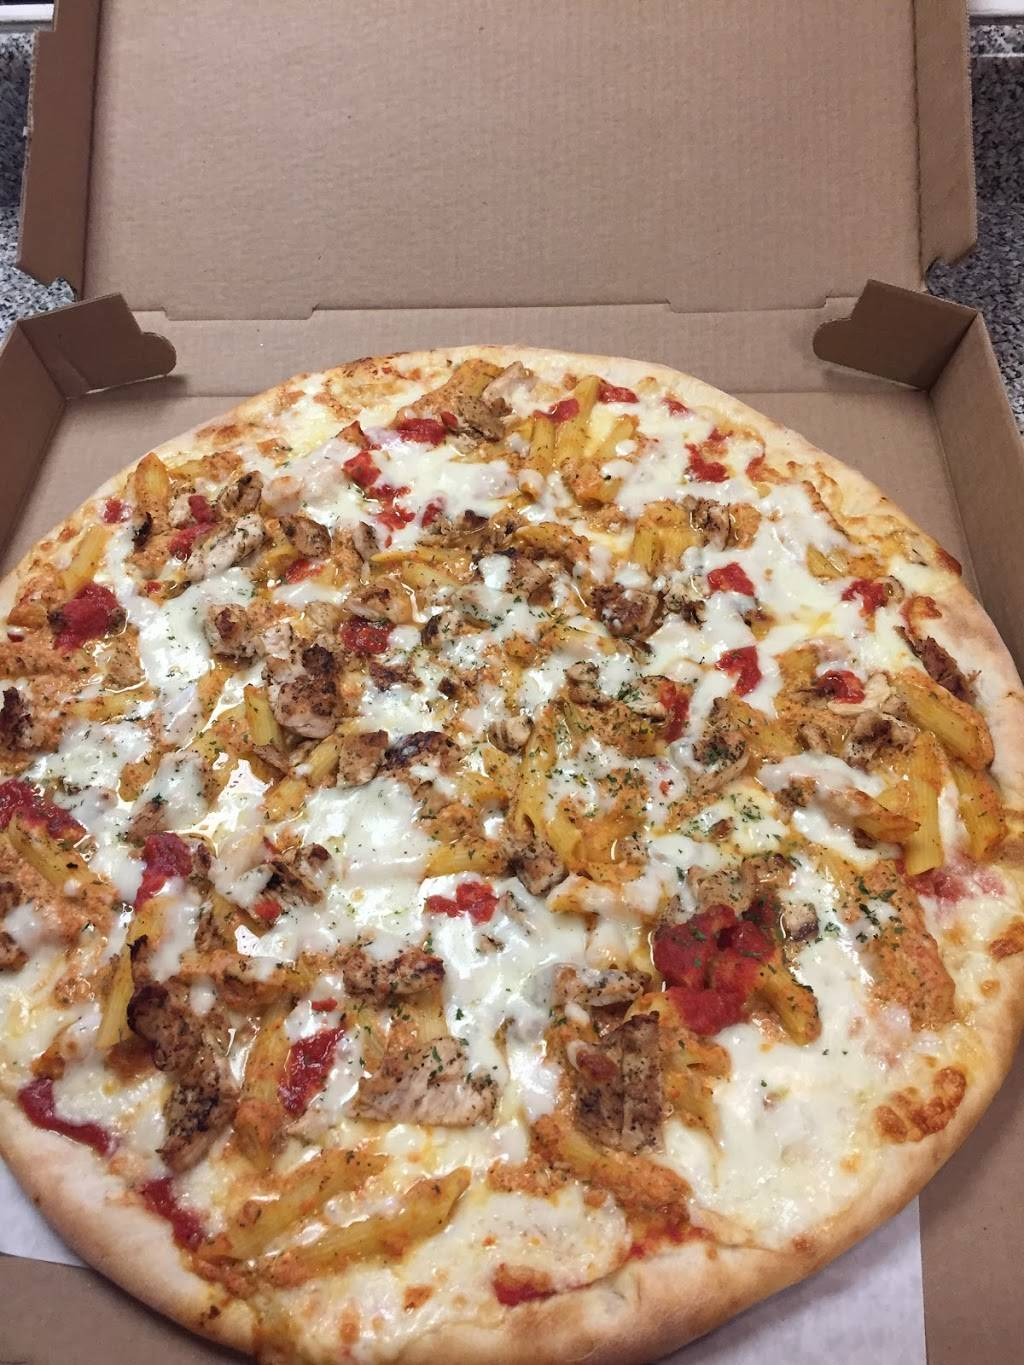 Yanis Pizza | restaurant | 202 North St, Middletown, NY 10940, USA | 8452394746 OR +1 845-239-4746